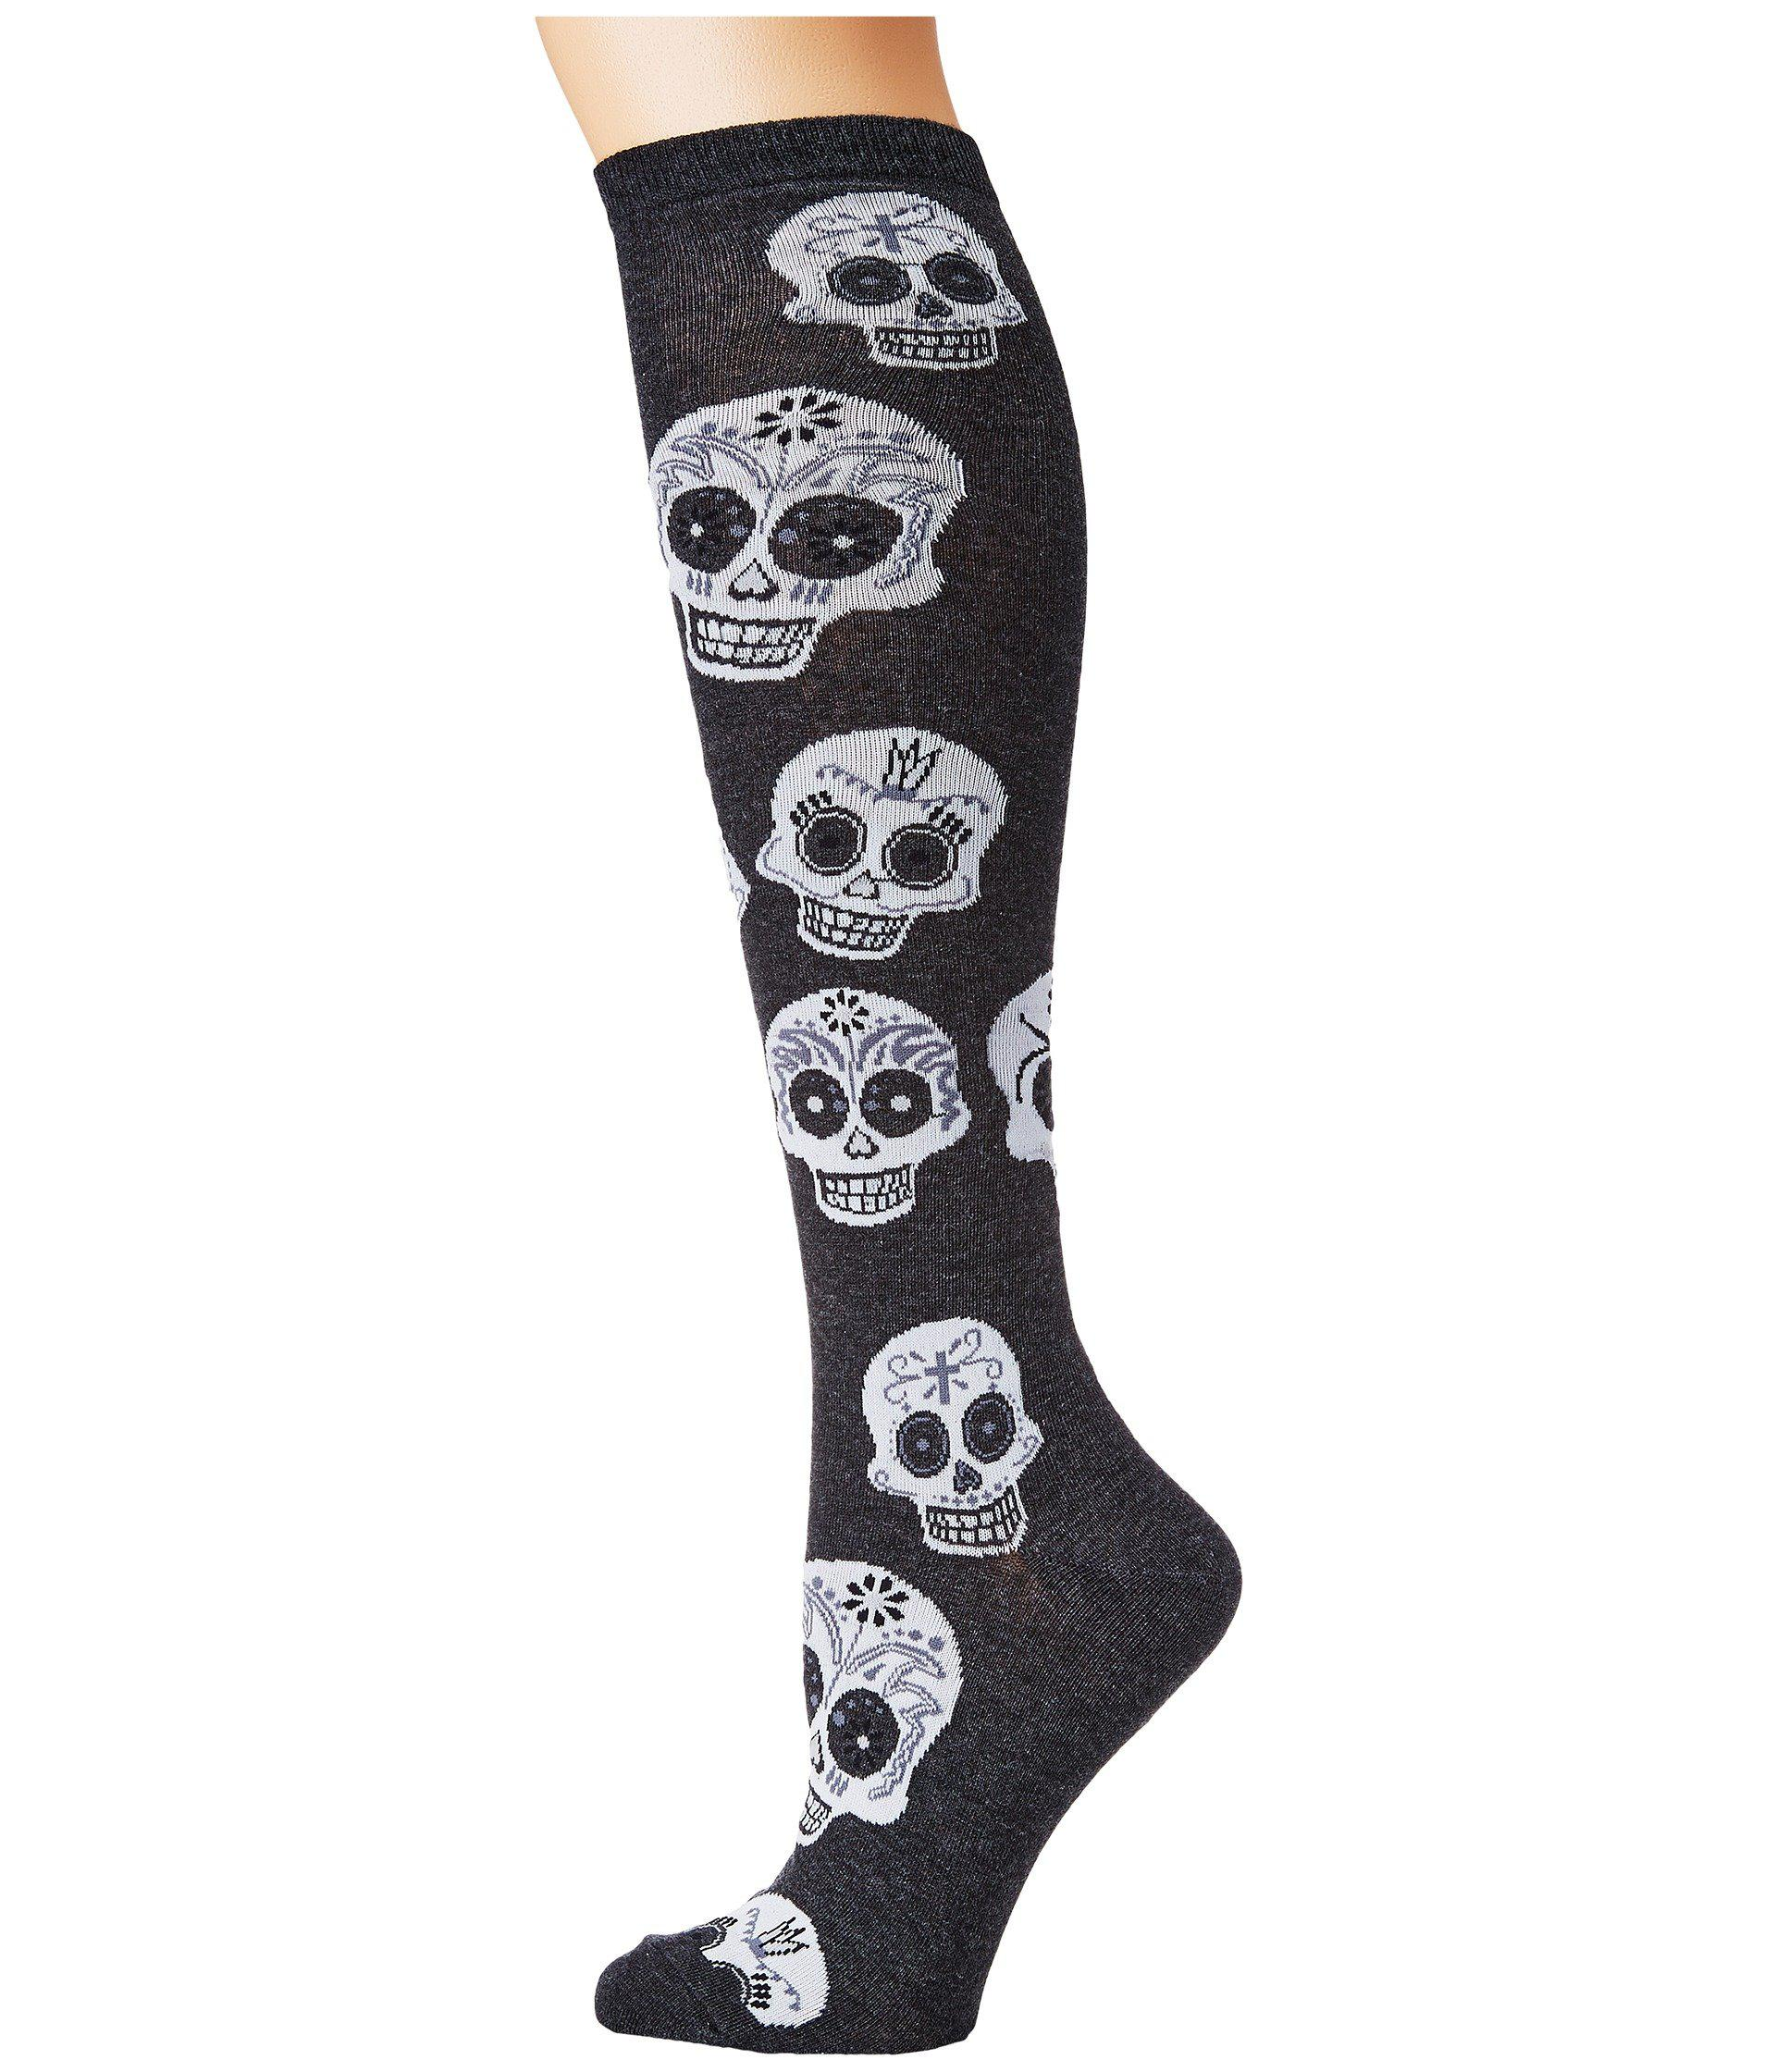 46b2344ed48 Socksmith Big Muertos Skull Knee High (charcoal Heather) Women s ...